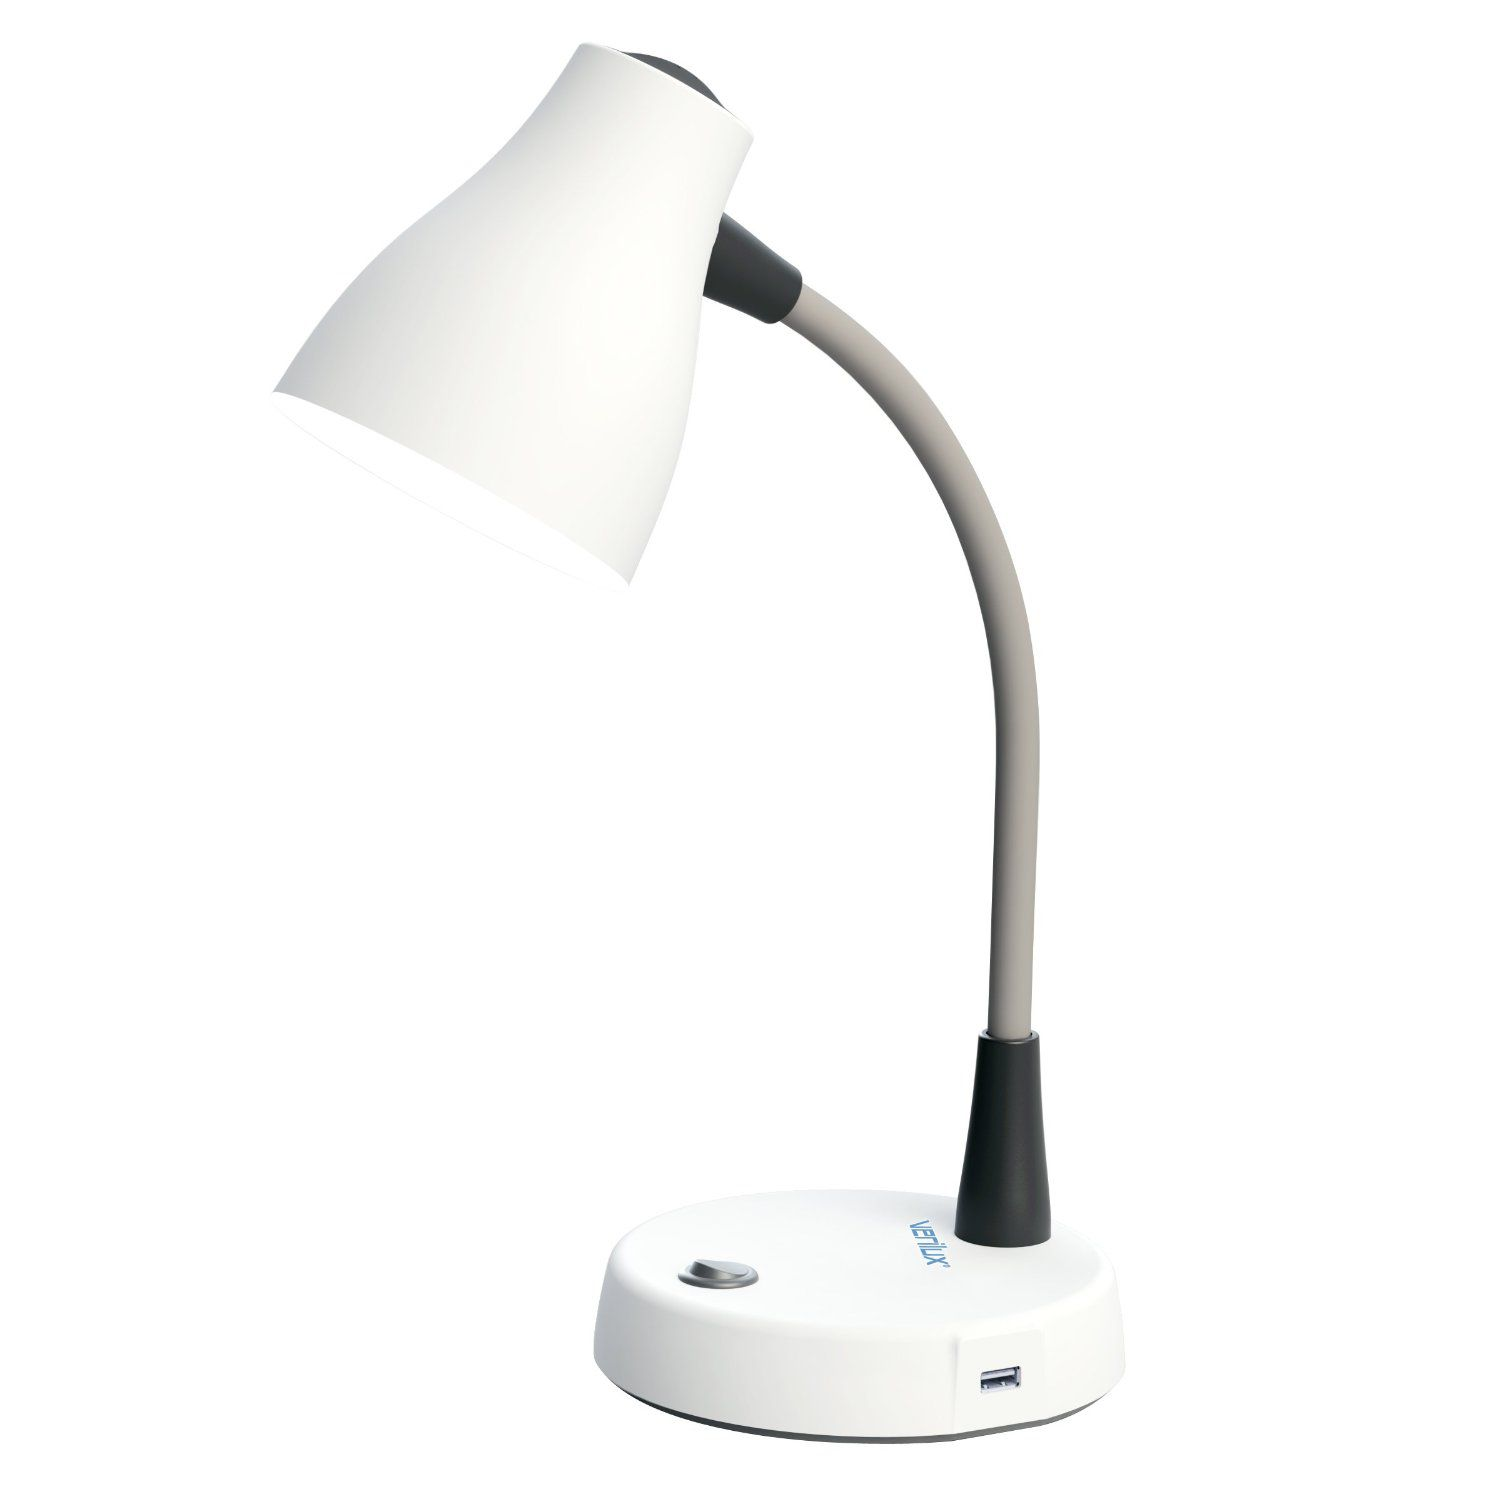 Verilux Tazza Natural Spectrum Desk Lamp with Outlet in Base, Adjustable EasyFlex Gooseneck, USB Charging Port